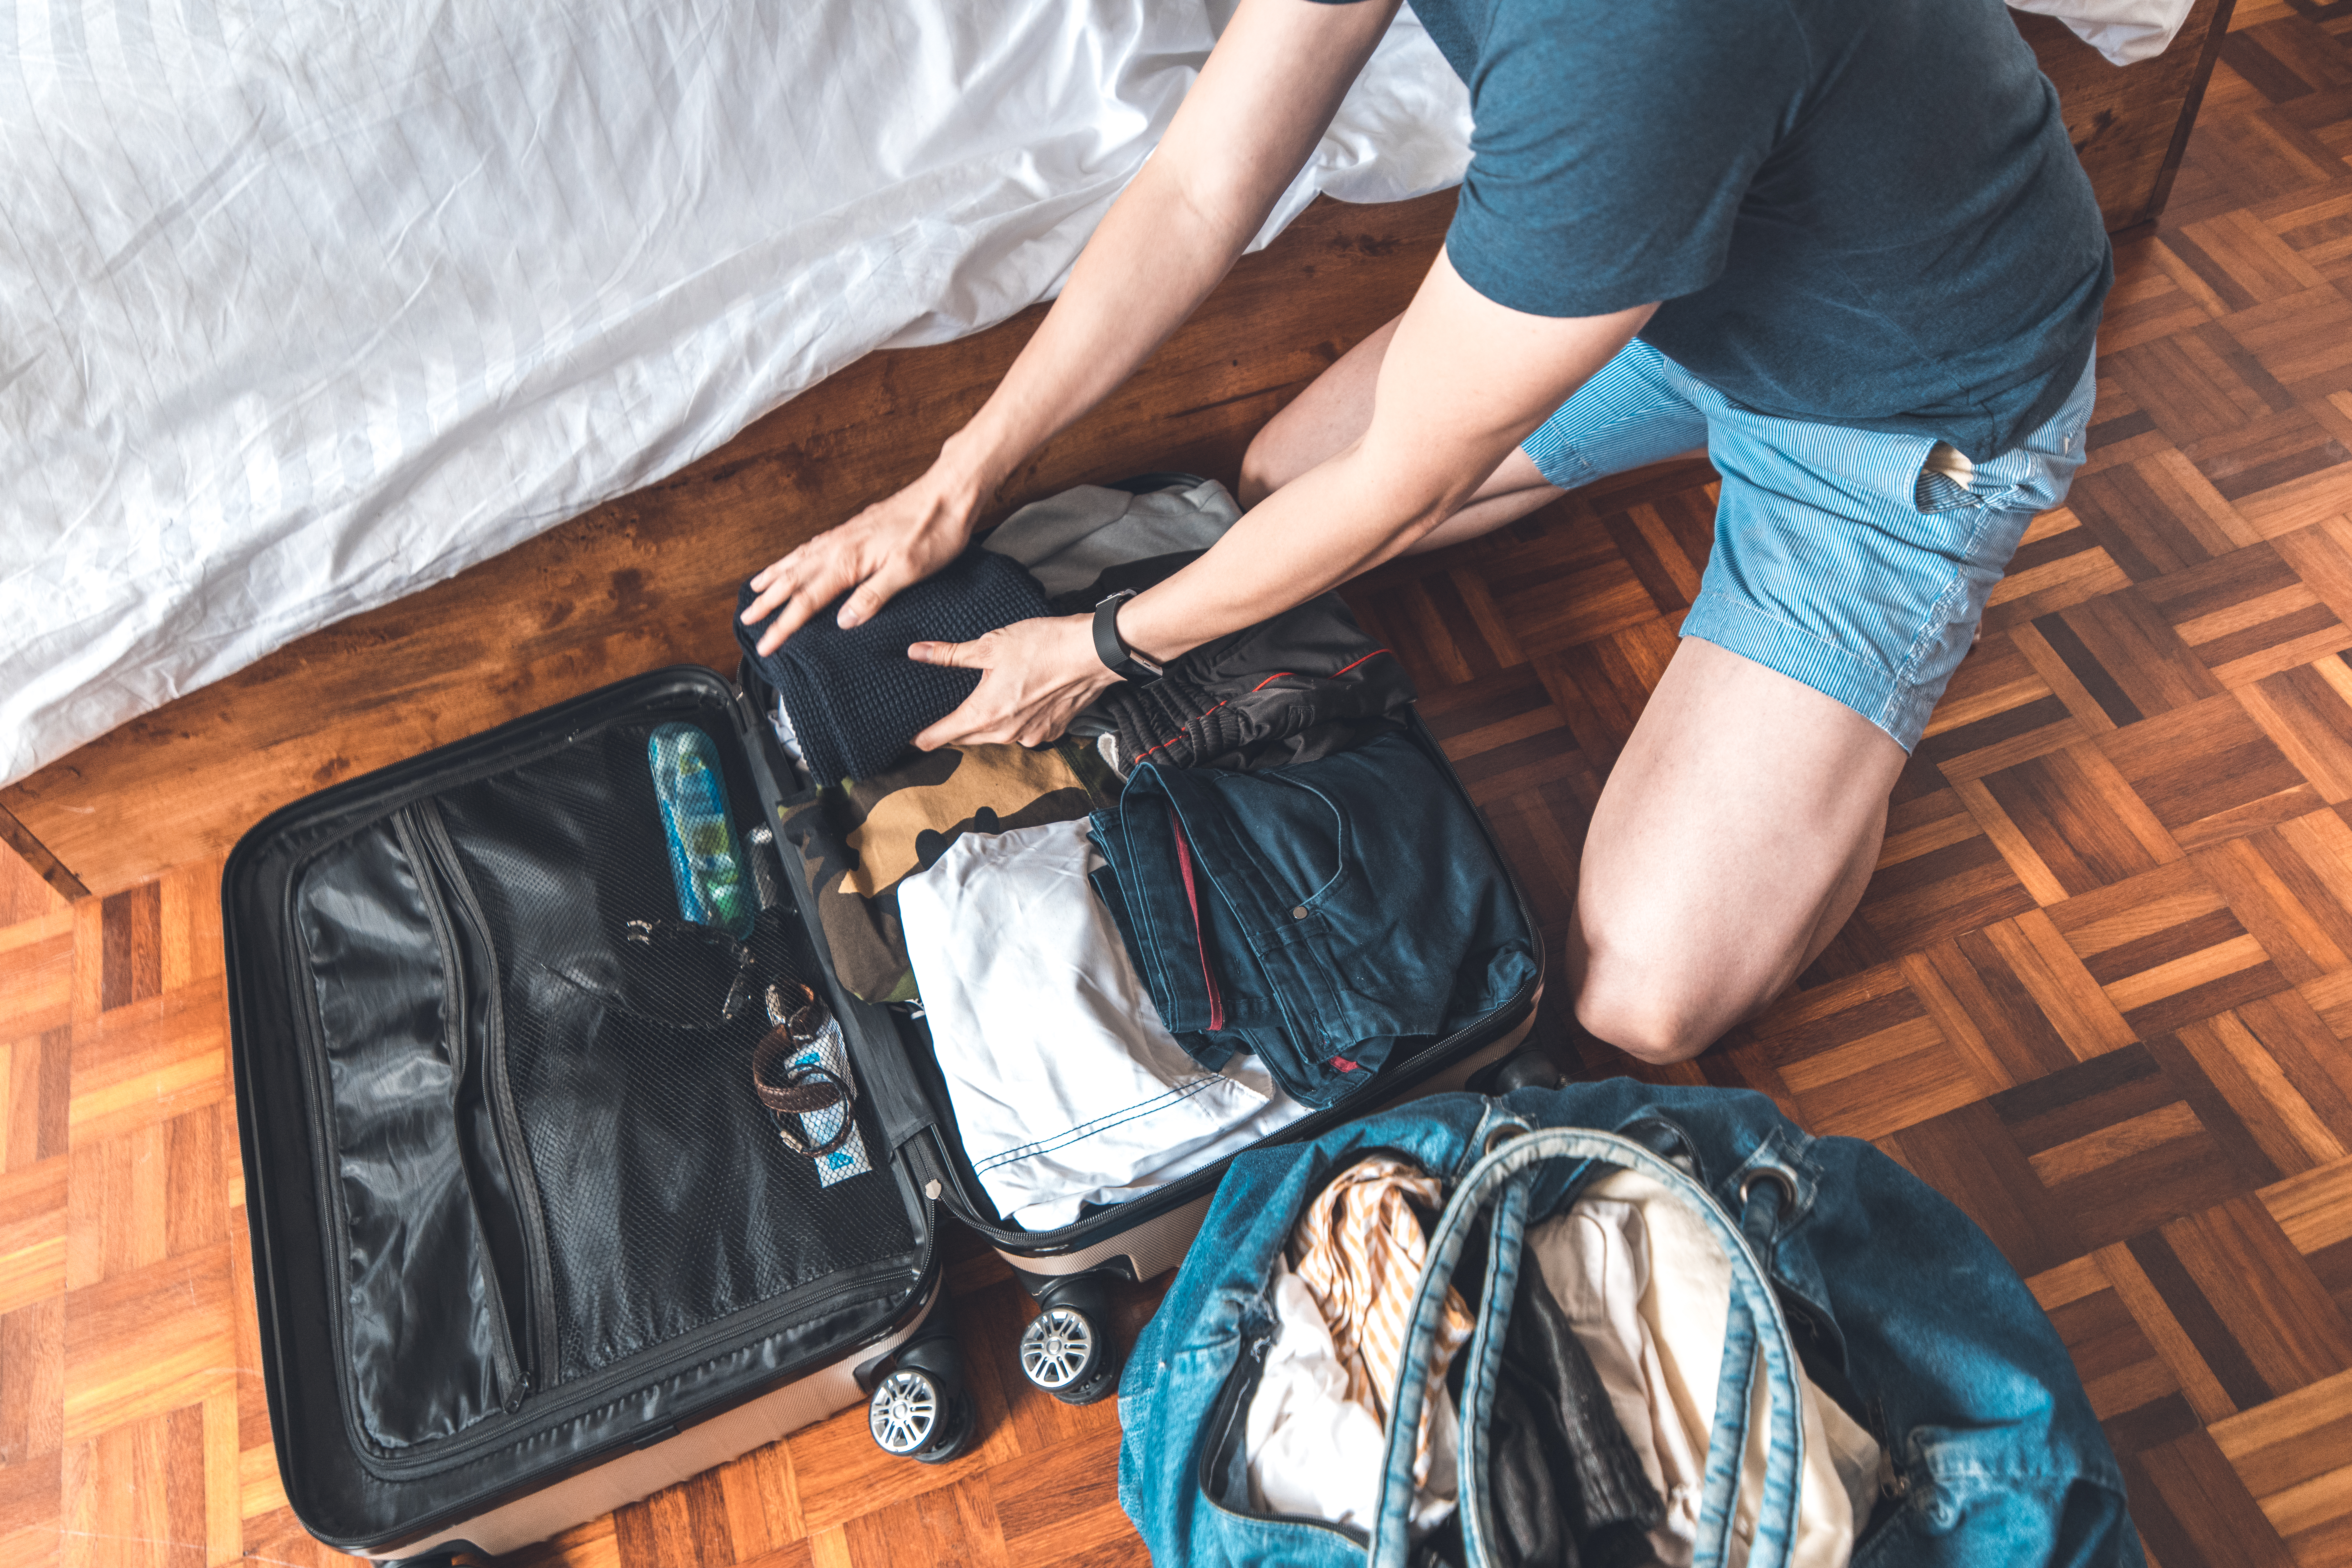 A man kneels on a hardwood floor with a duffel bag at his side, packing a suitcase.